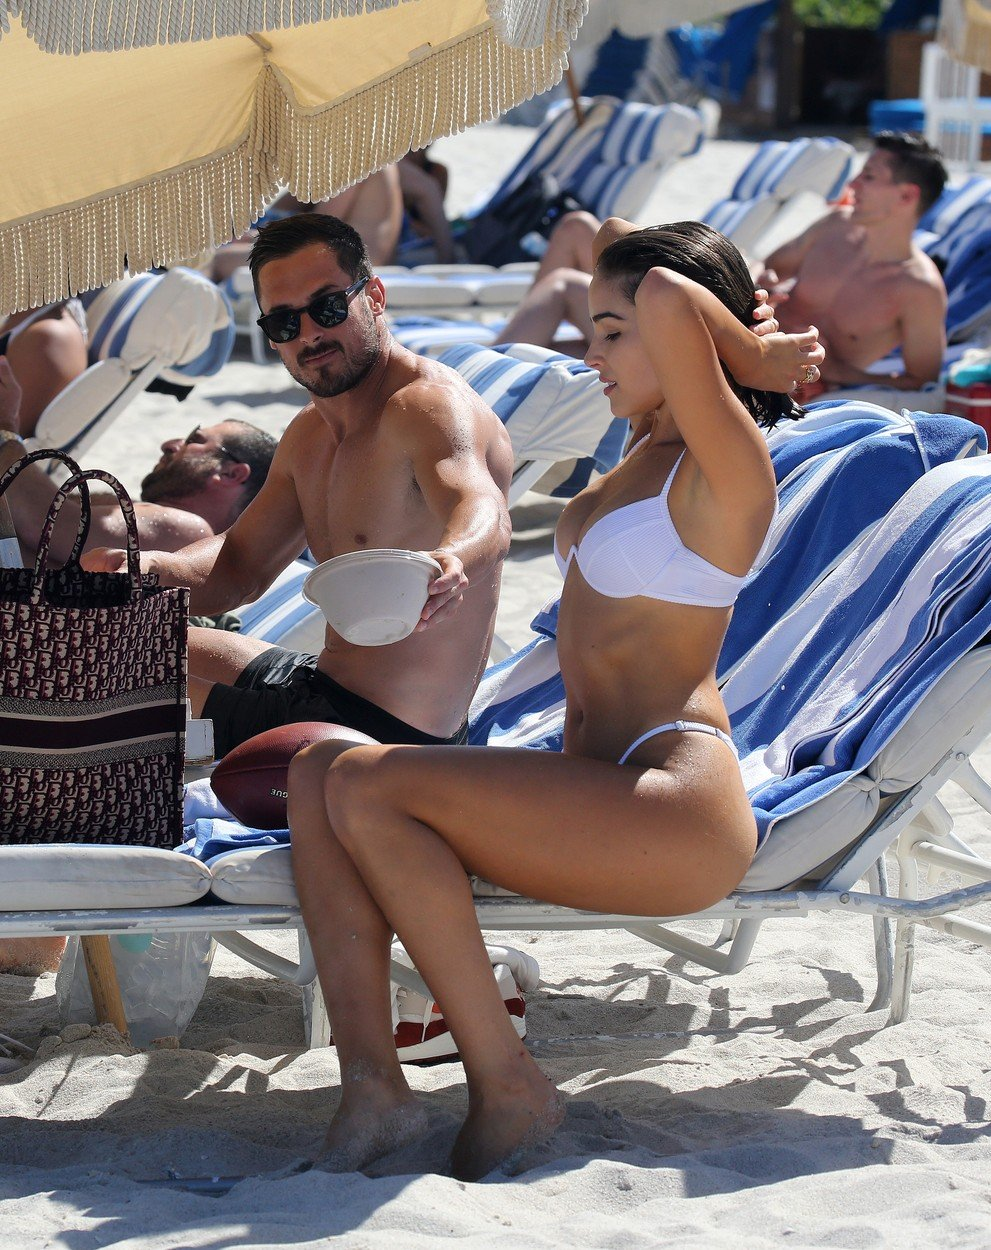 Bikini clad Model Olivia Culpo and NFL player Danny Amendola are clearly back together as they hold hands  on the beach in Miami. 25 Sep 2018, Image: 388375839, License: Rights-managed, Restrictions: World Rights, Model Release: no, Credit line: Profimedia, Mega Agency